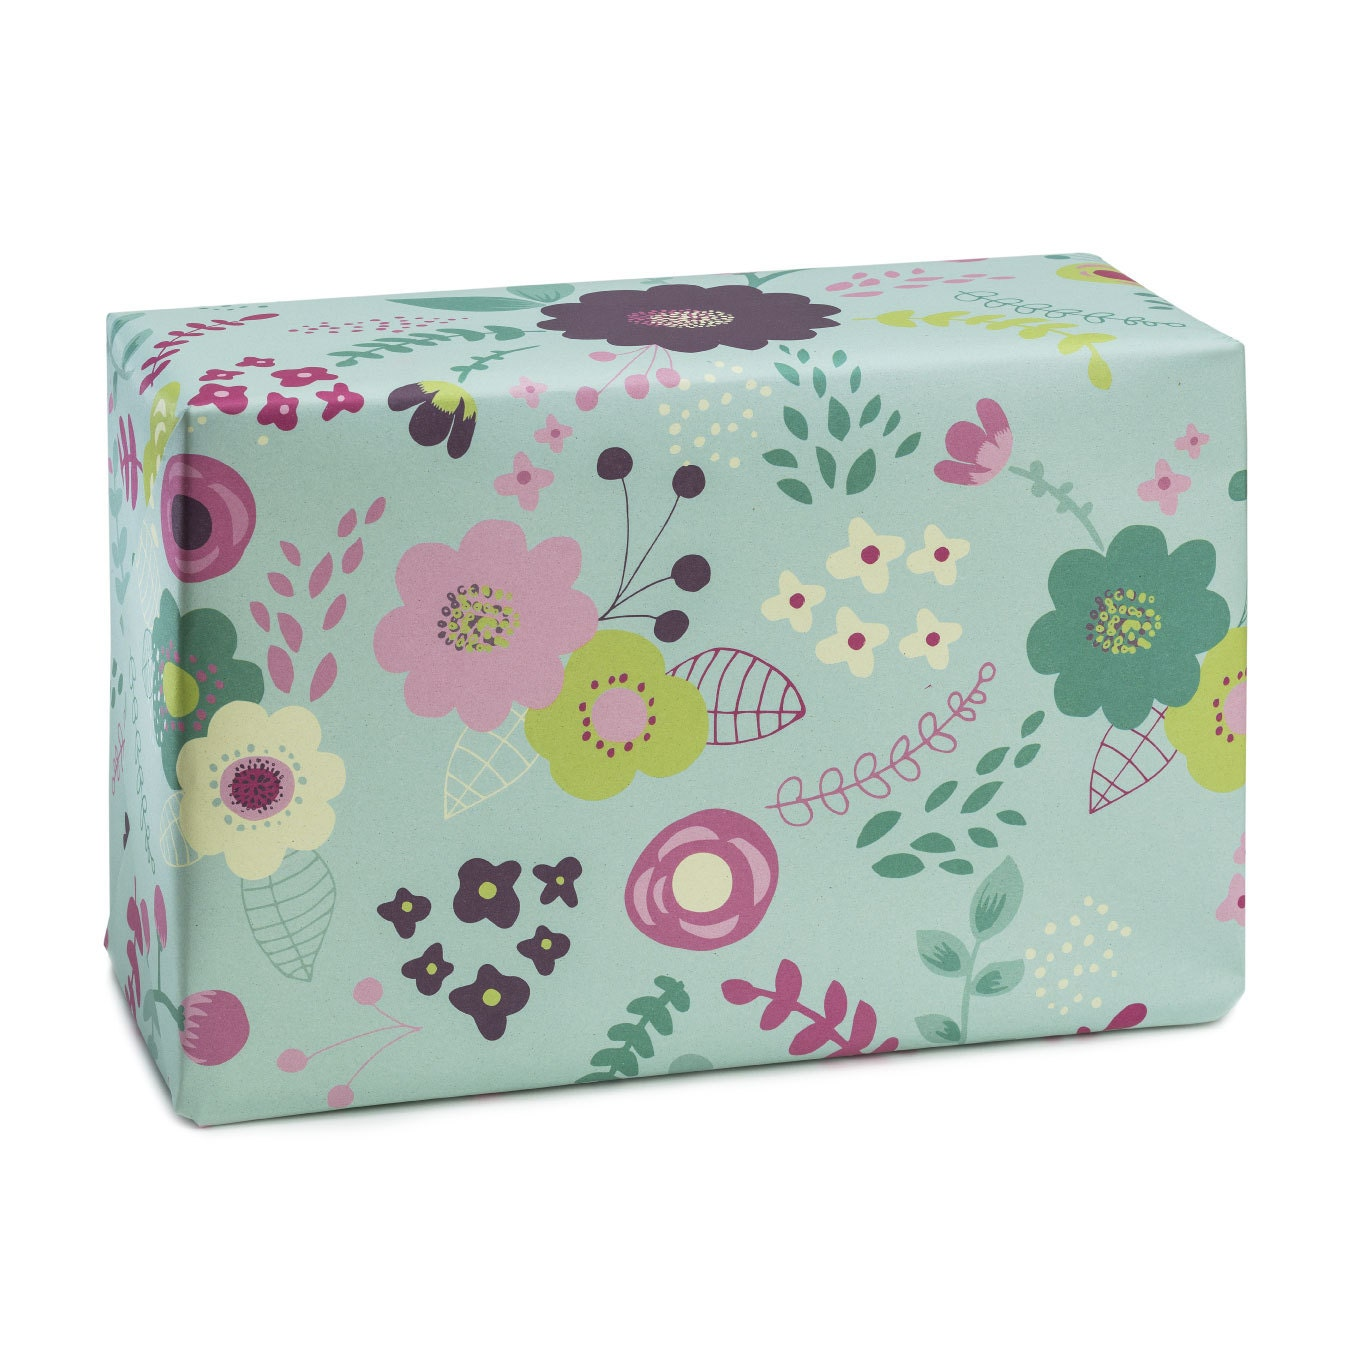 Green Pond Floral Wrapping Paper Mint Background Pink And Purple